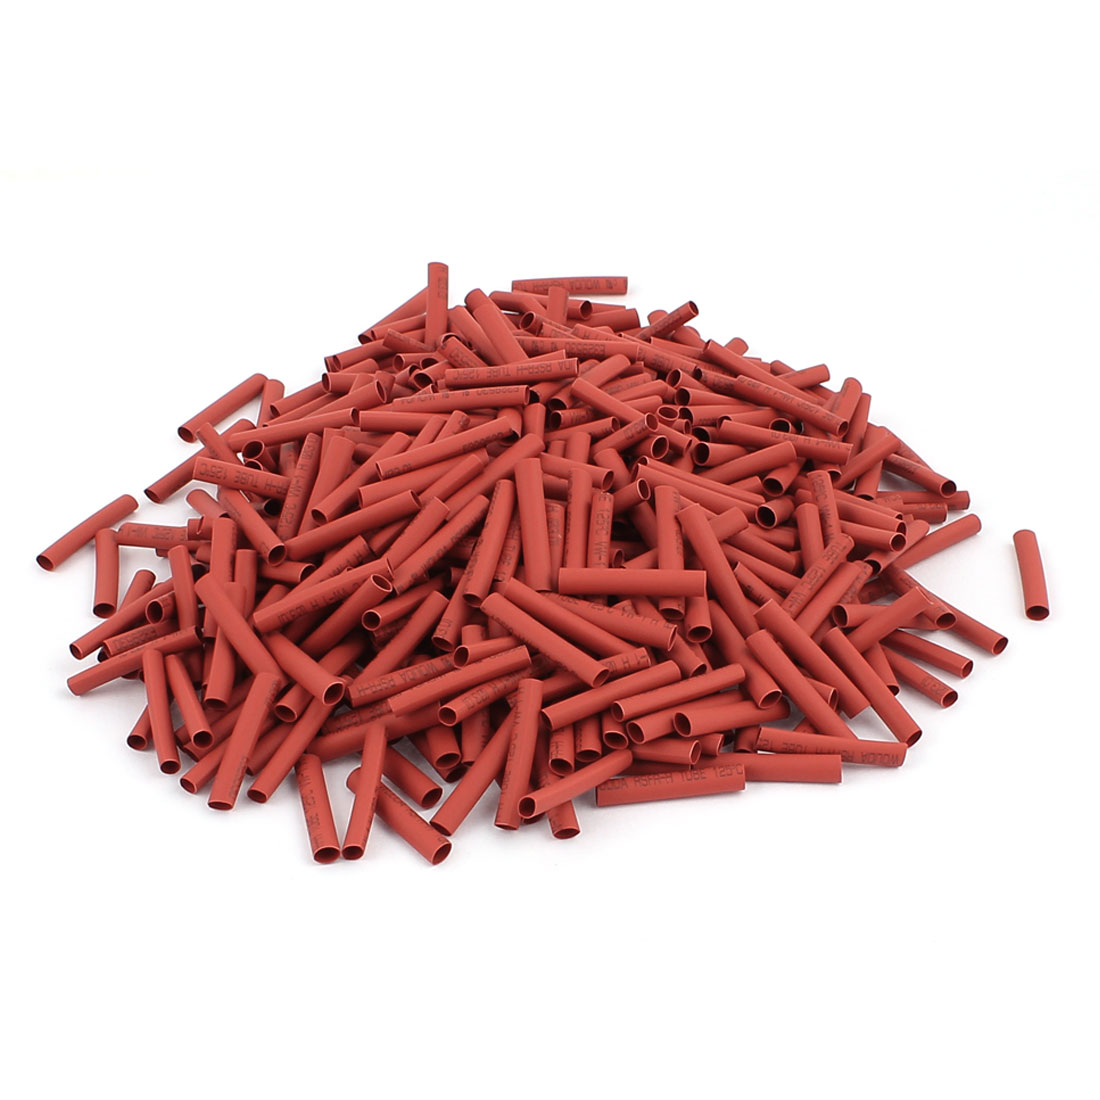 25mm Long Polyolefin Heat Shrink Wrap Tubing Electrical Cable Sleeve Red 500Pcs